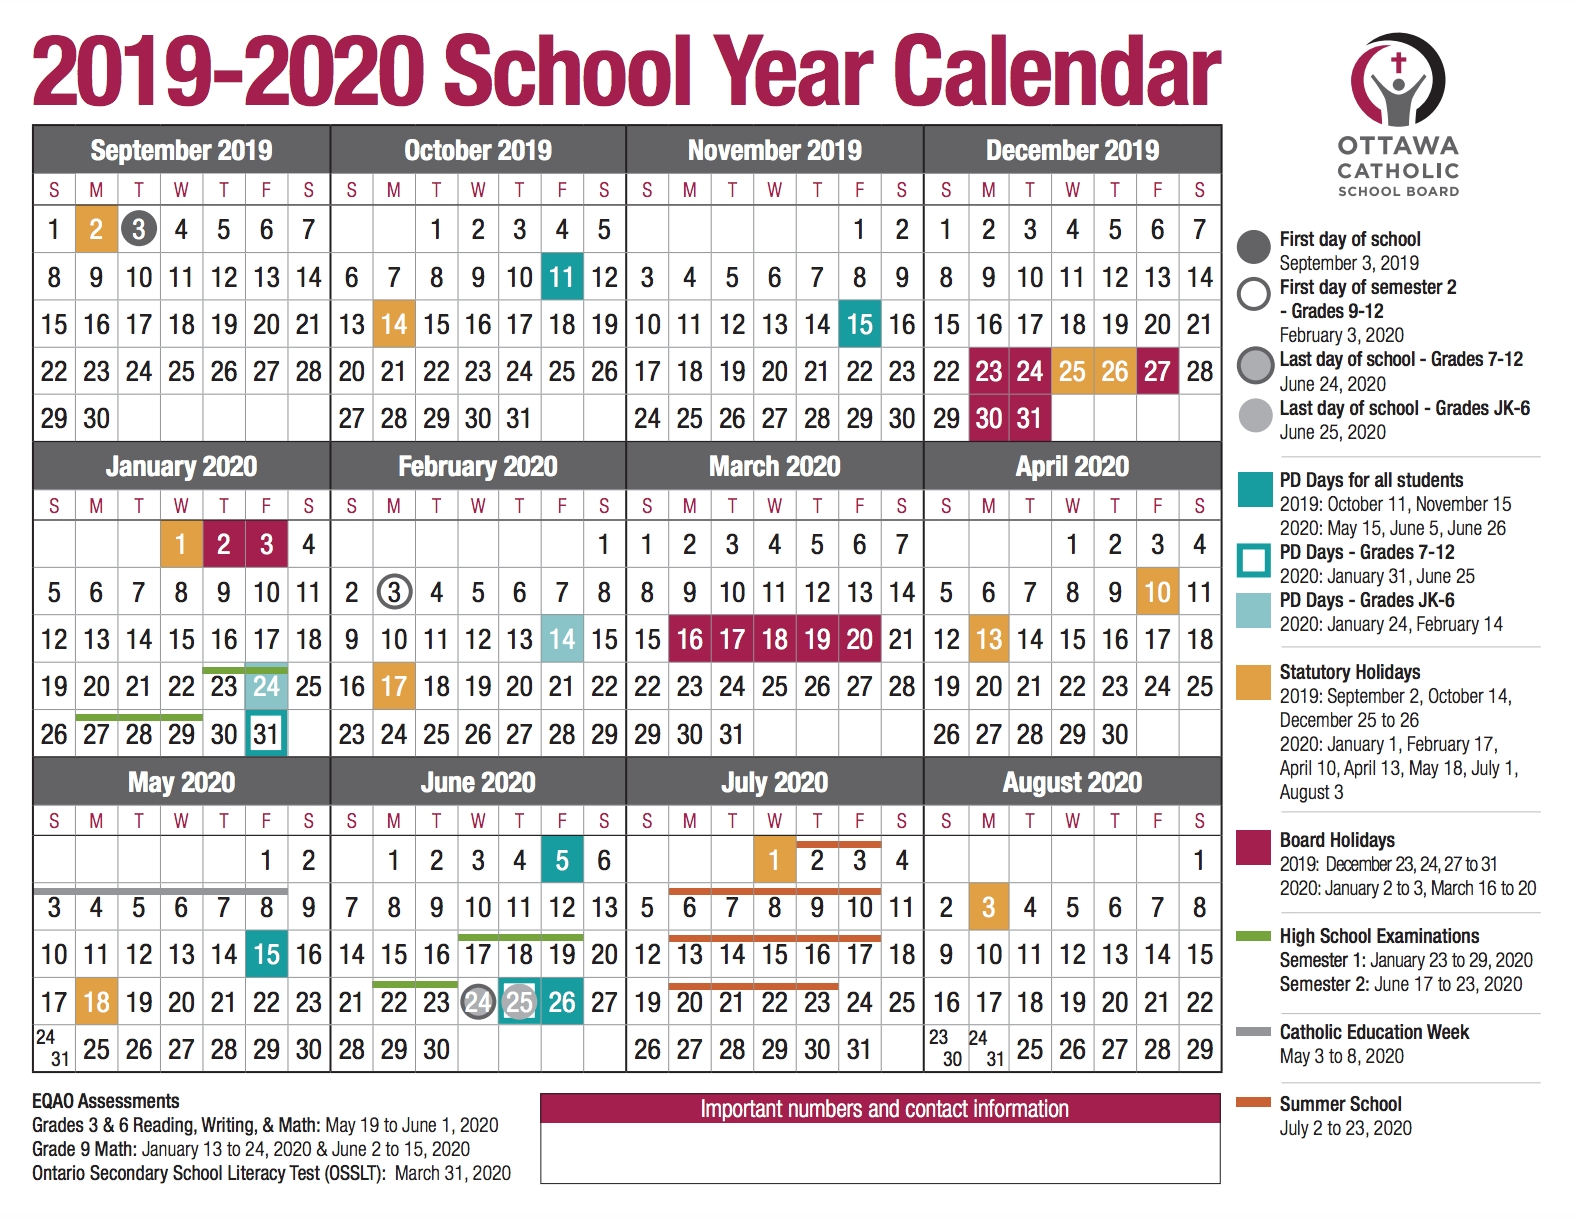 School Year Calendar From The Ocsb-Key West Calendar January 2020